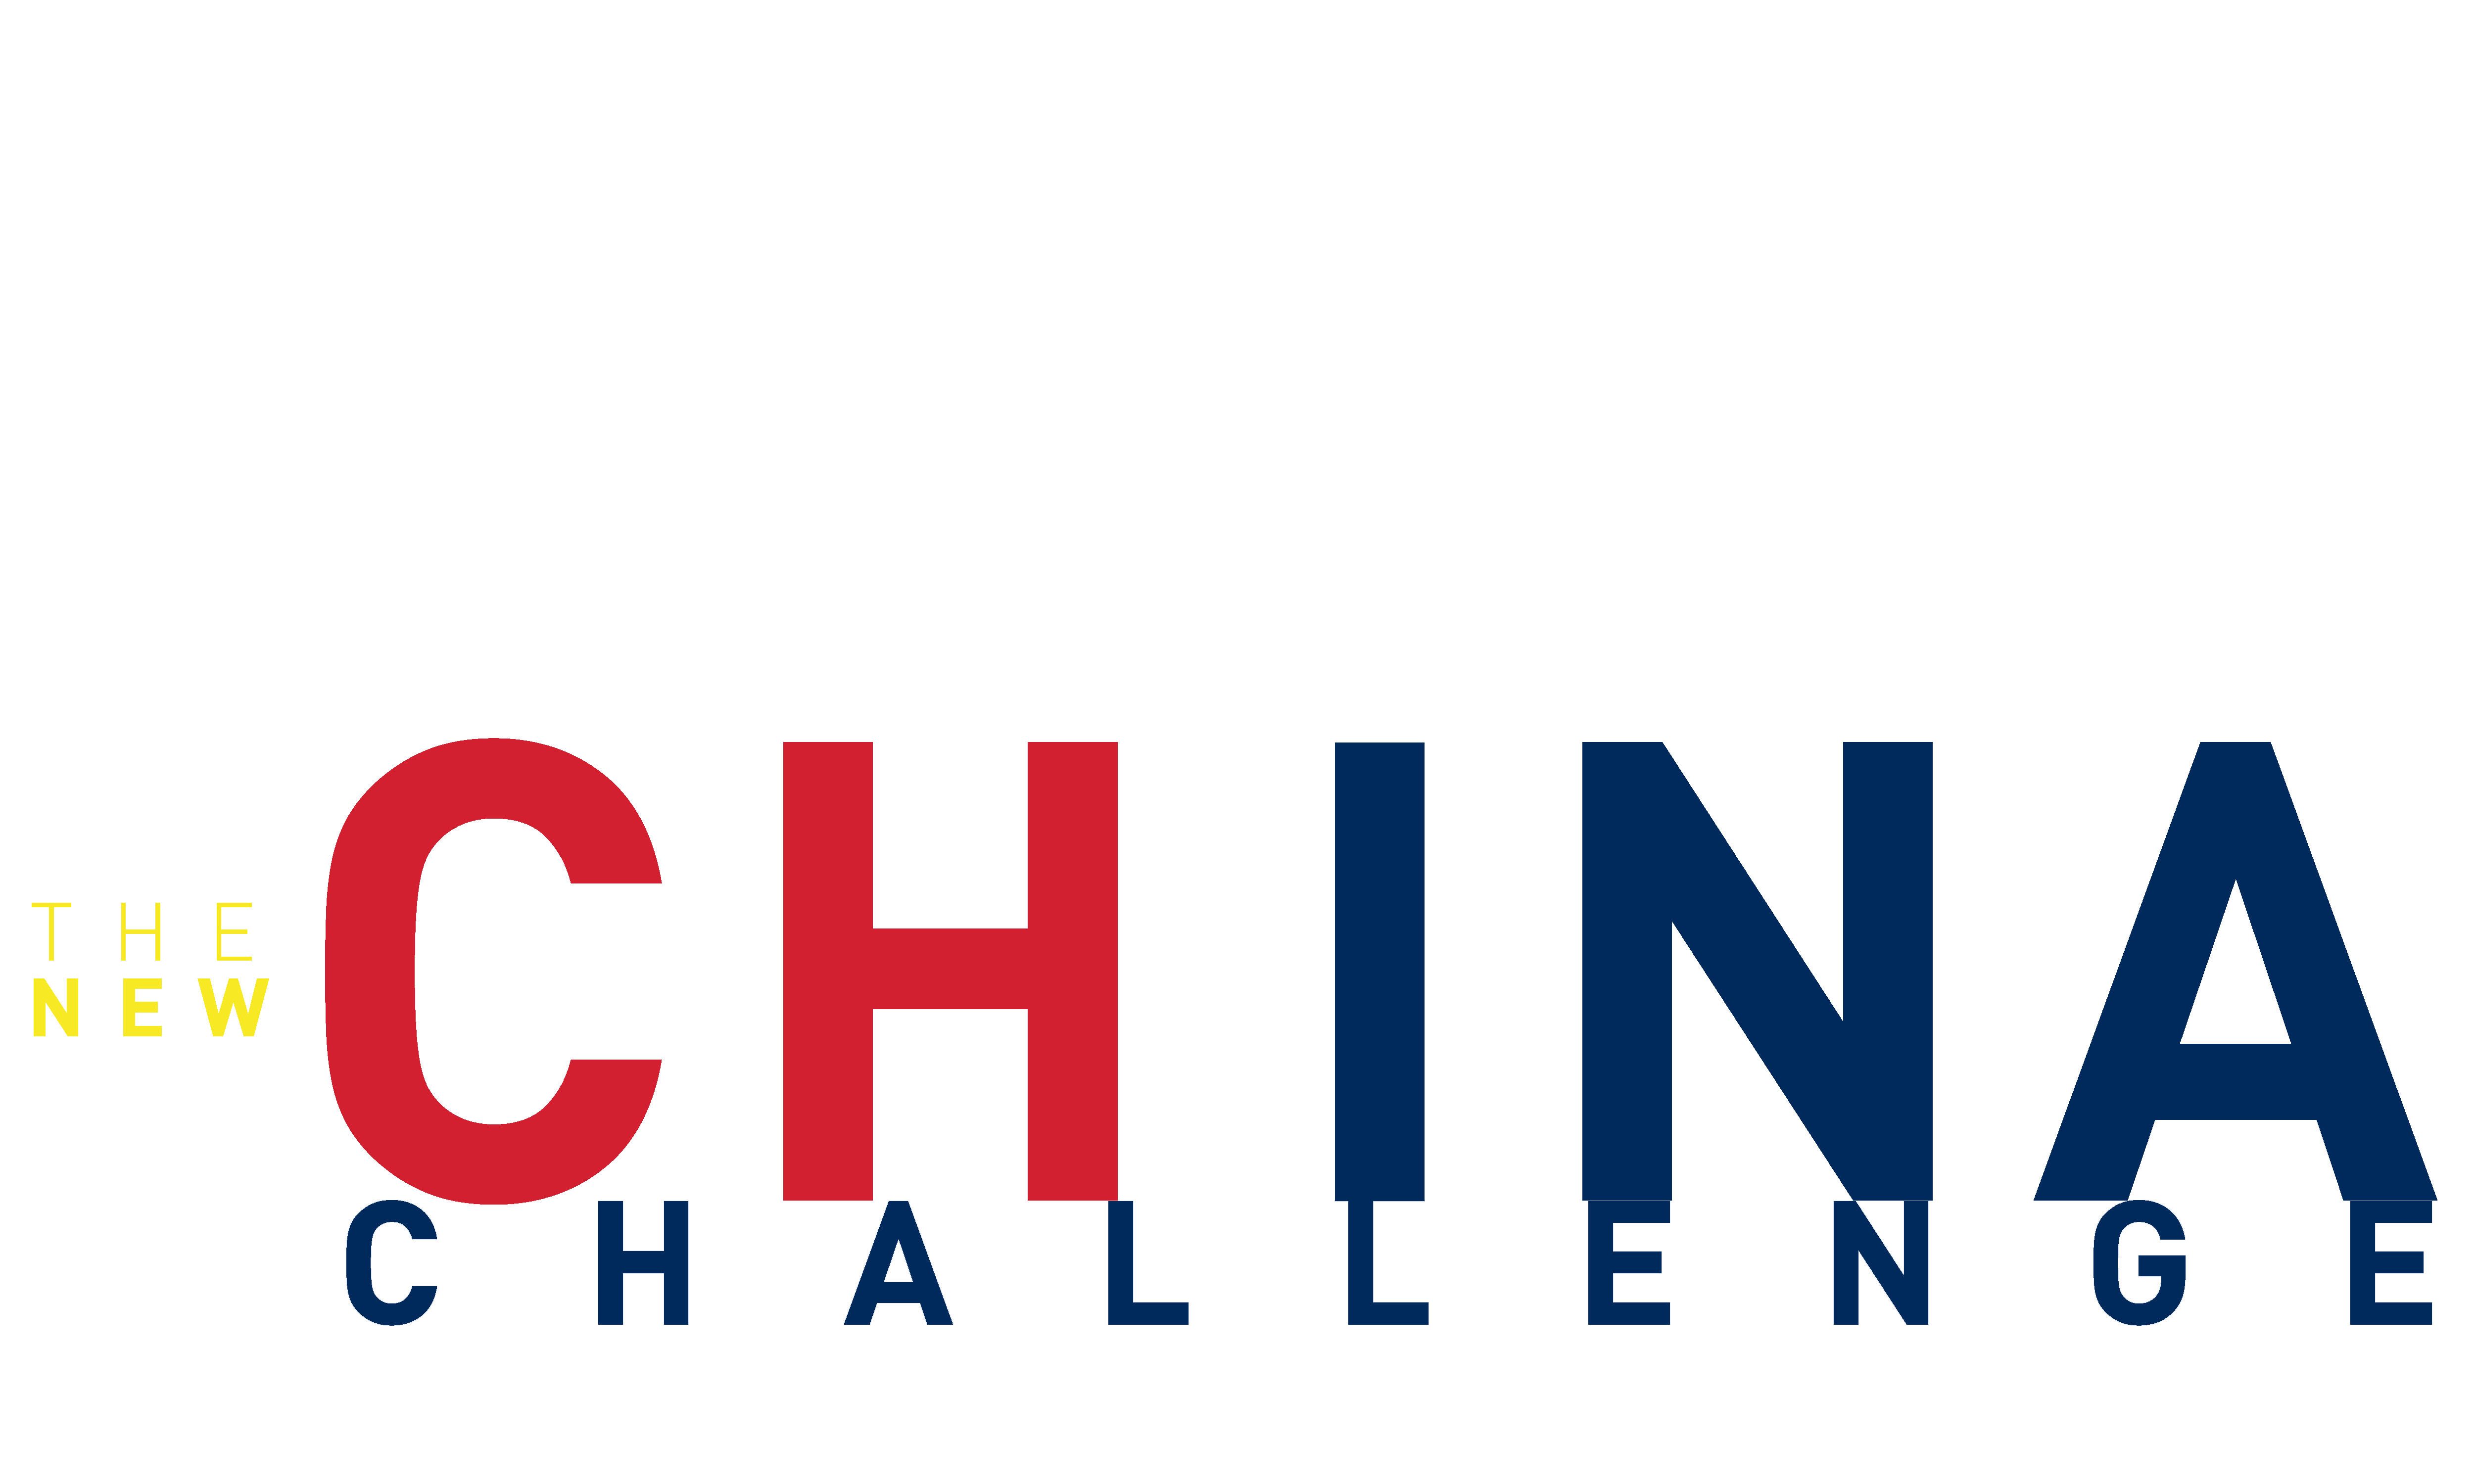 New China Challenge 2018 Logo